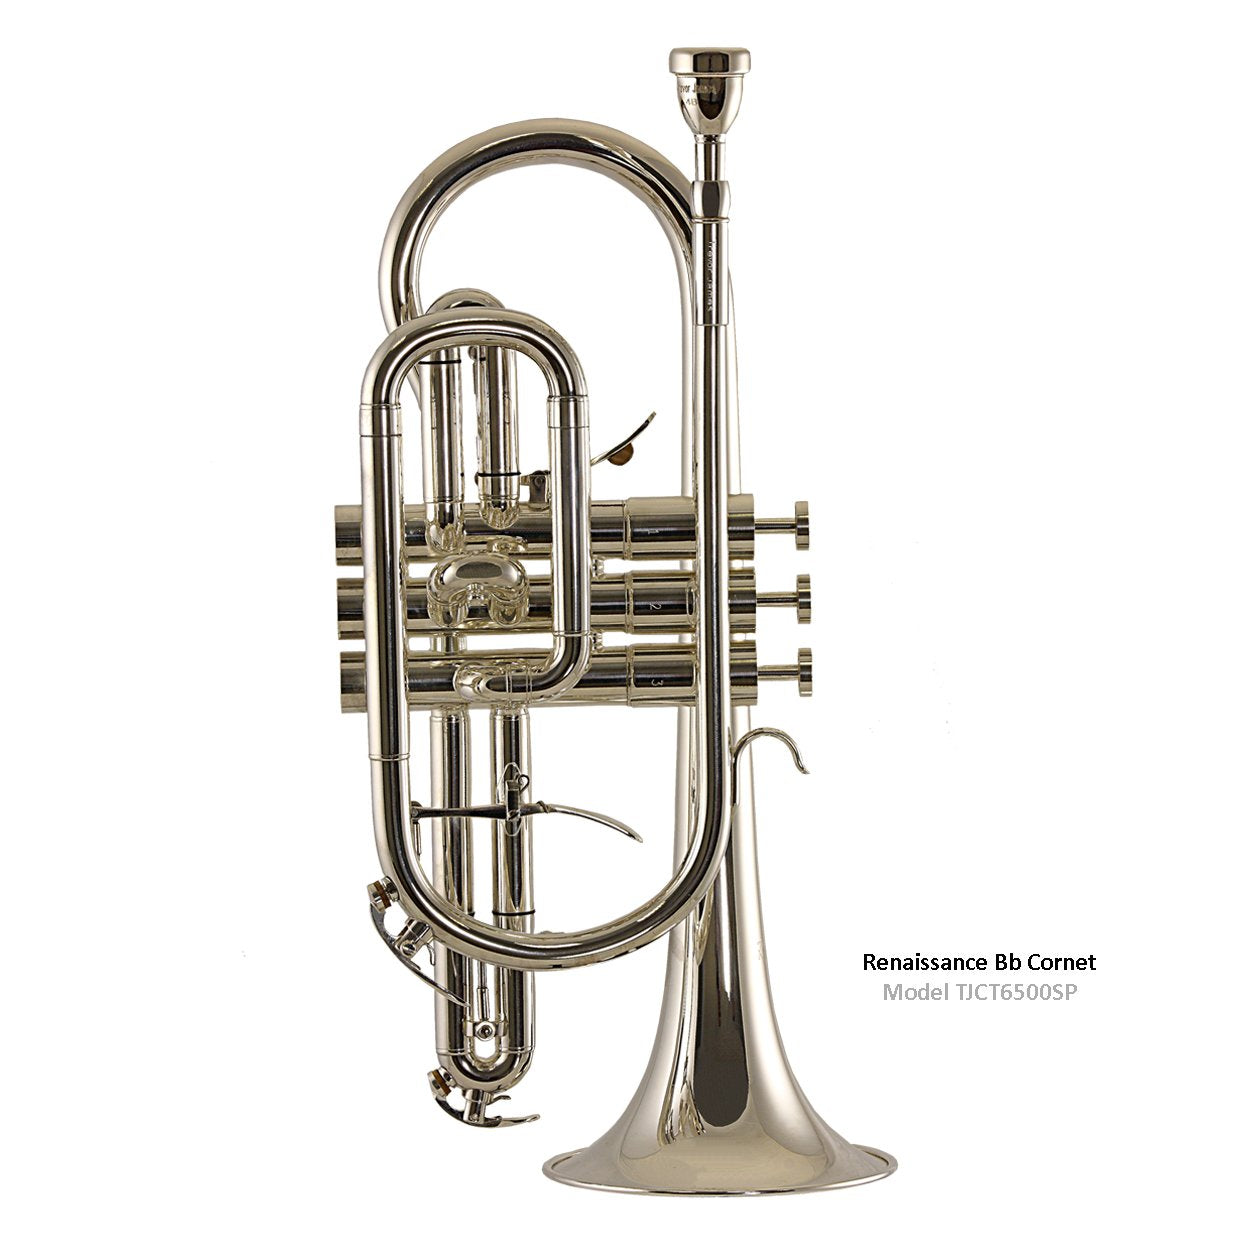 Trevor James - 6500 Renaissance Bb Cornet-Cornet-Trevor James-Music Elements